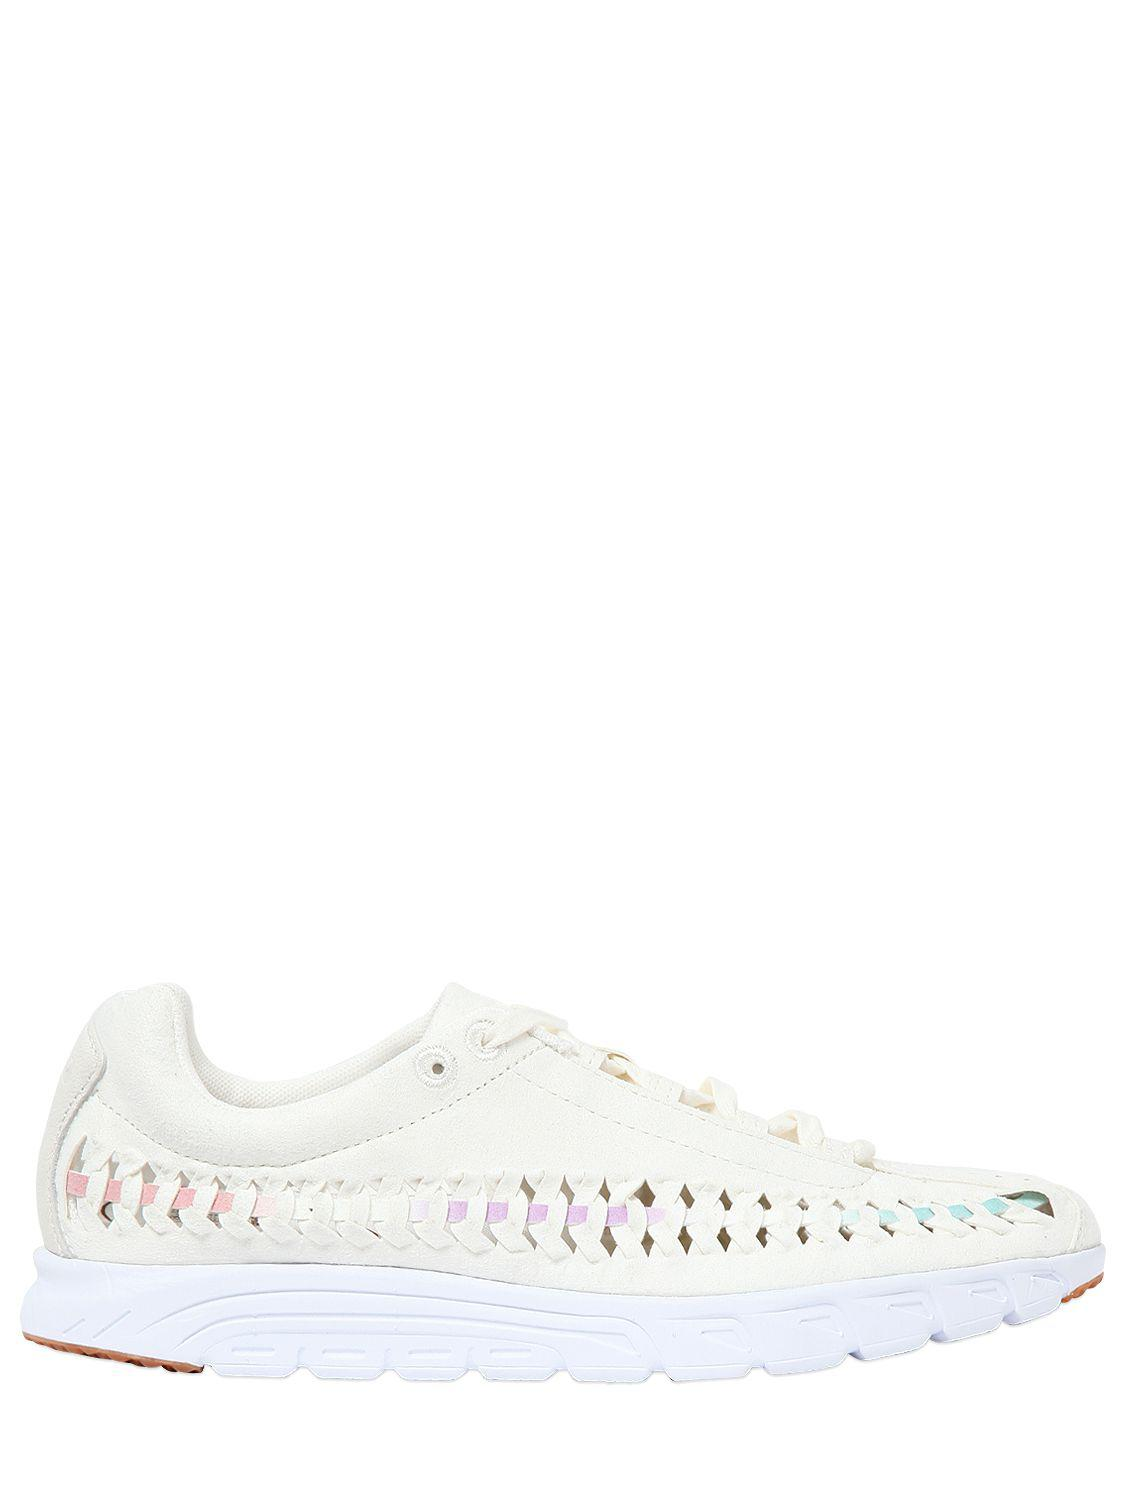 952c93fadf2269 Nike Mayfly Woven Suede Sneakers in White - Lyst